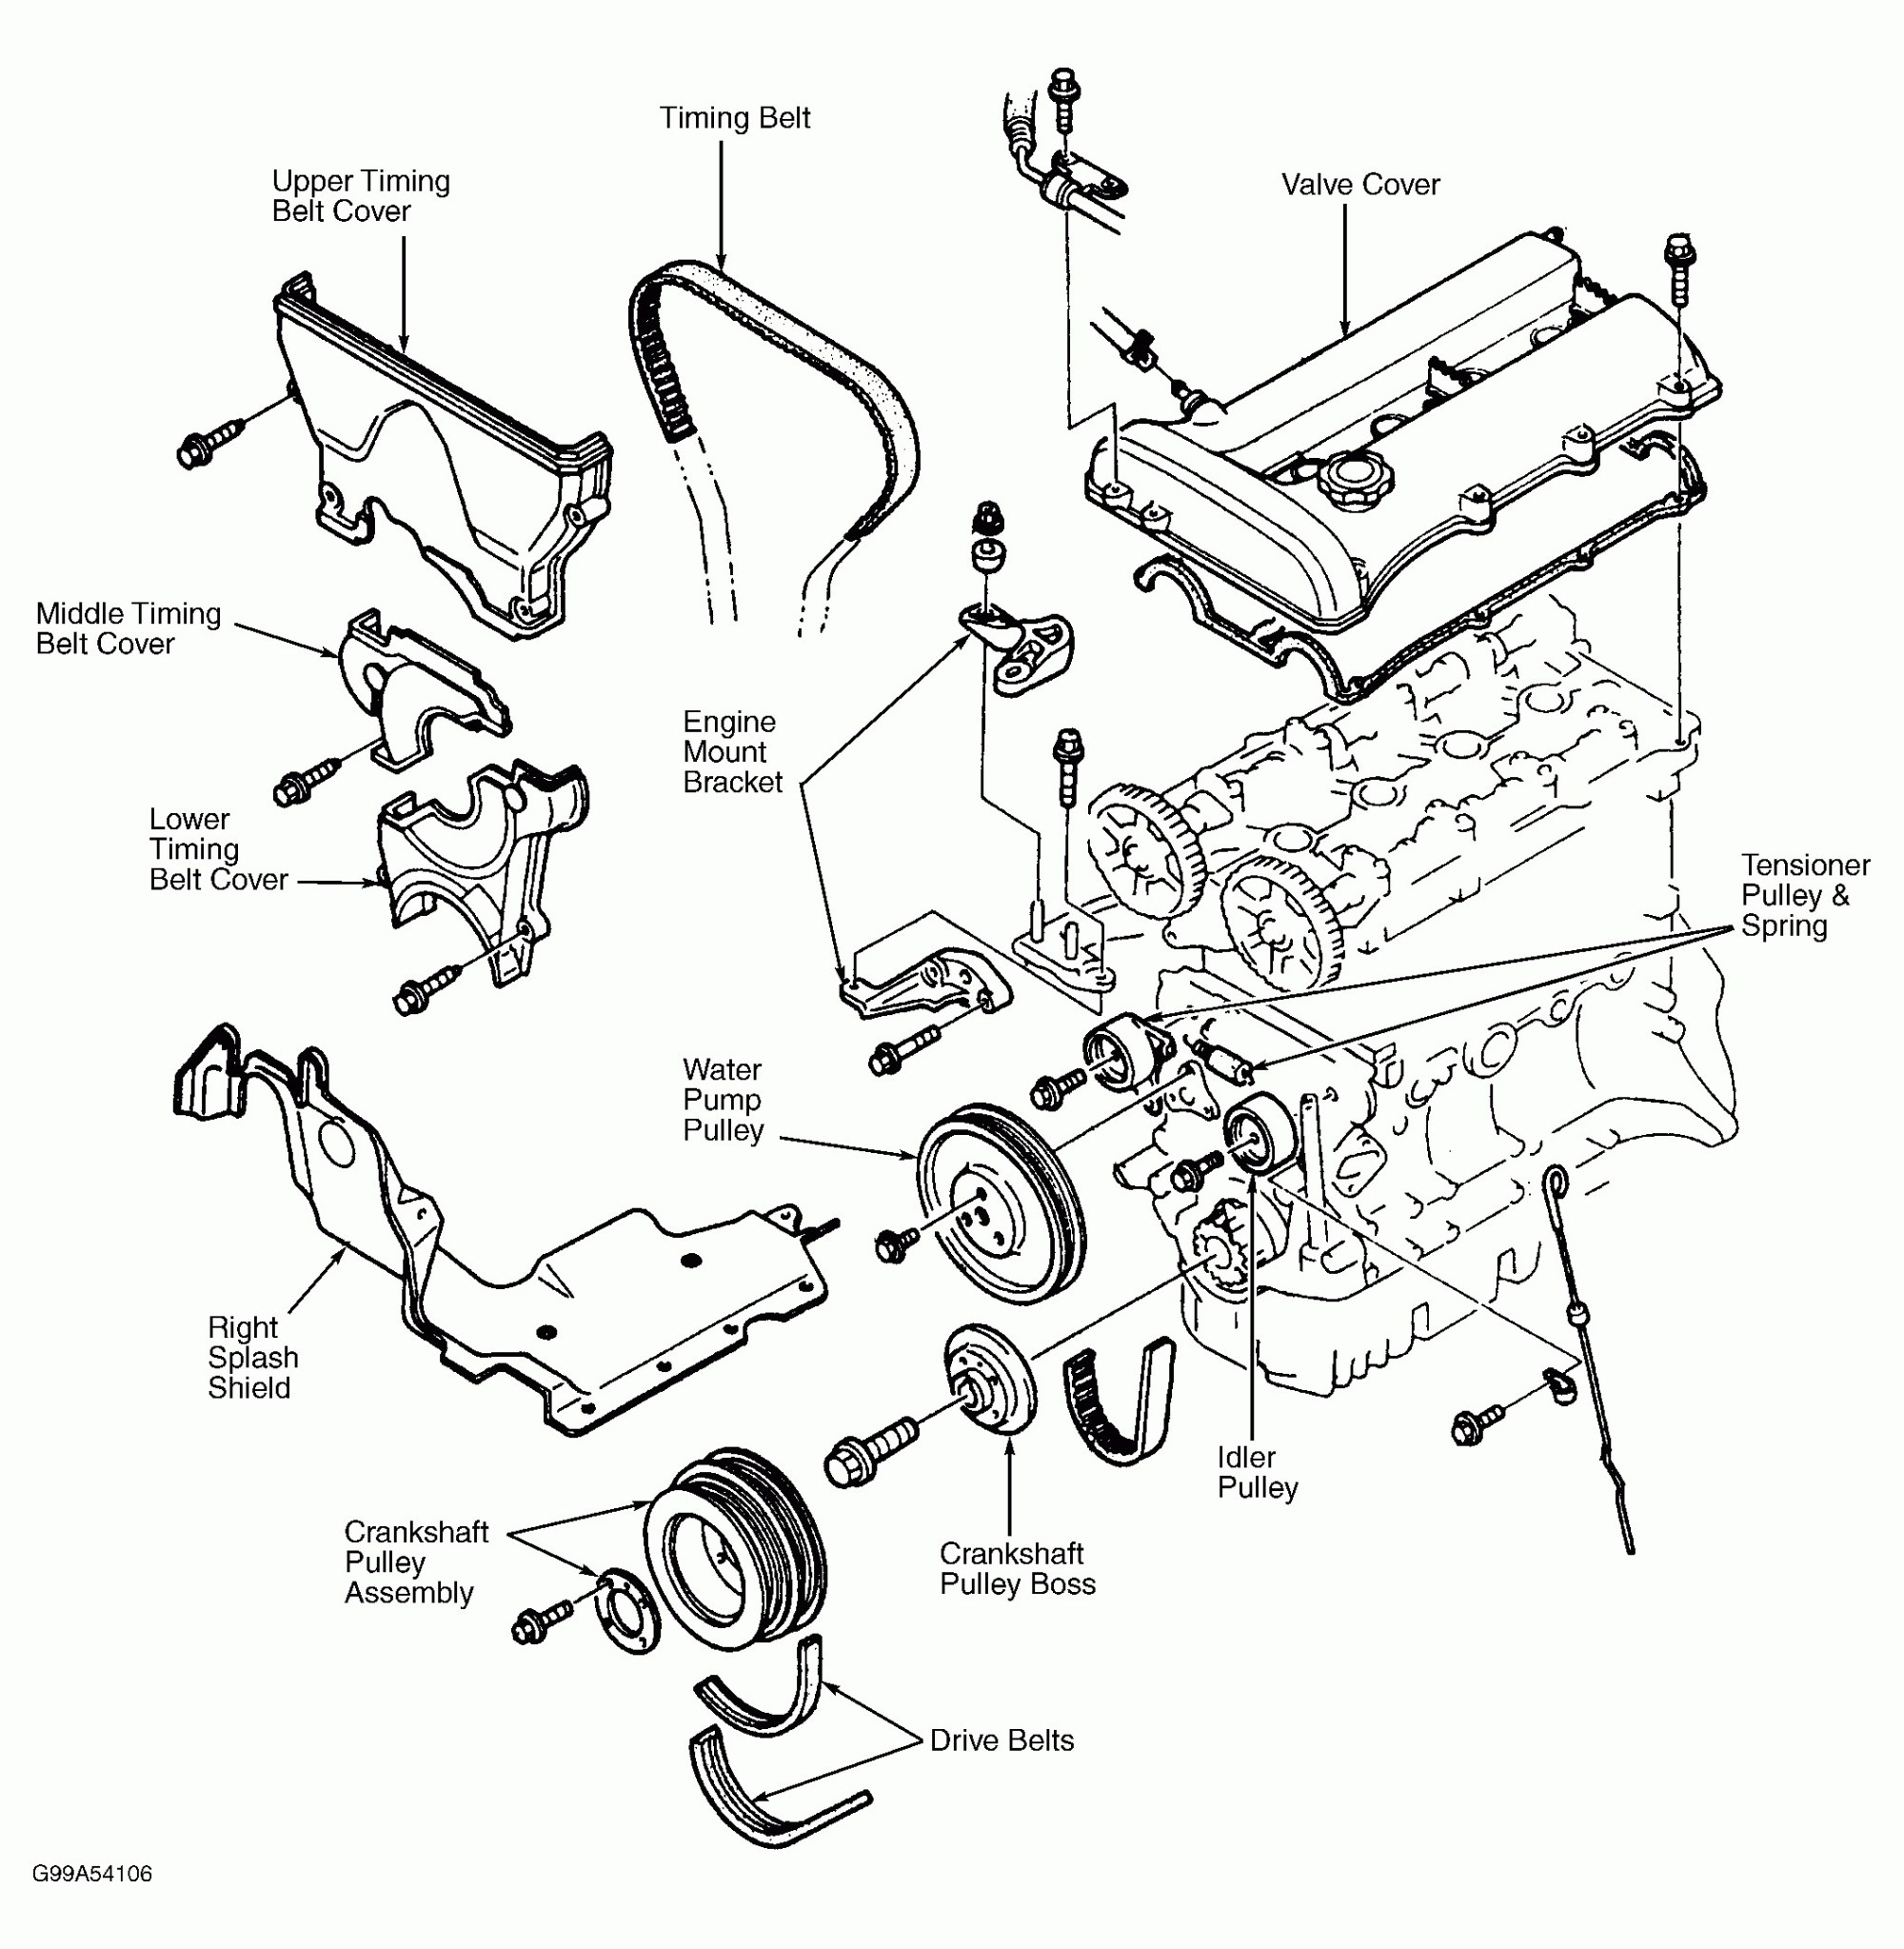 hight resolution of mazda millenia engine diagram wiring library rh 16 bloxhuette de 2000 mazda mpv vacuum diagram 2001 mazda protege engine crankshaft diagram